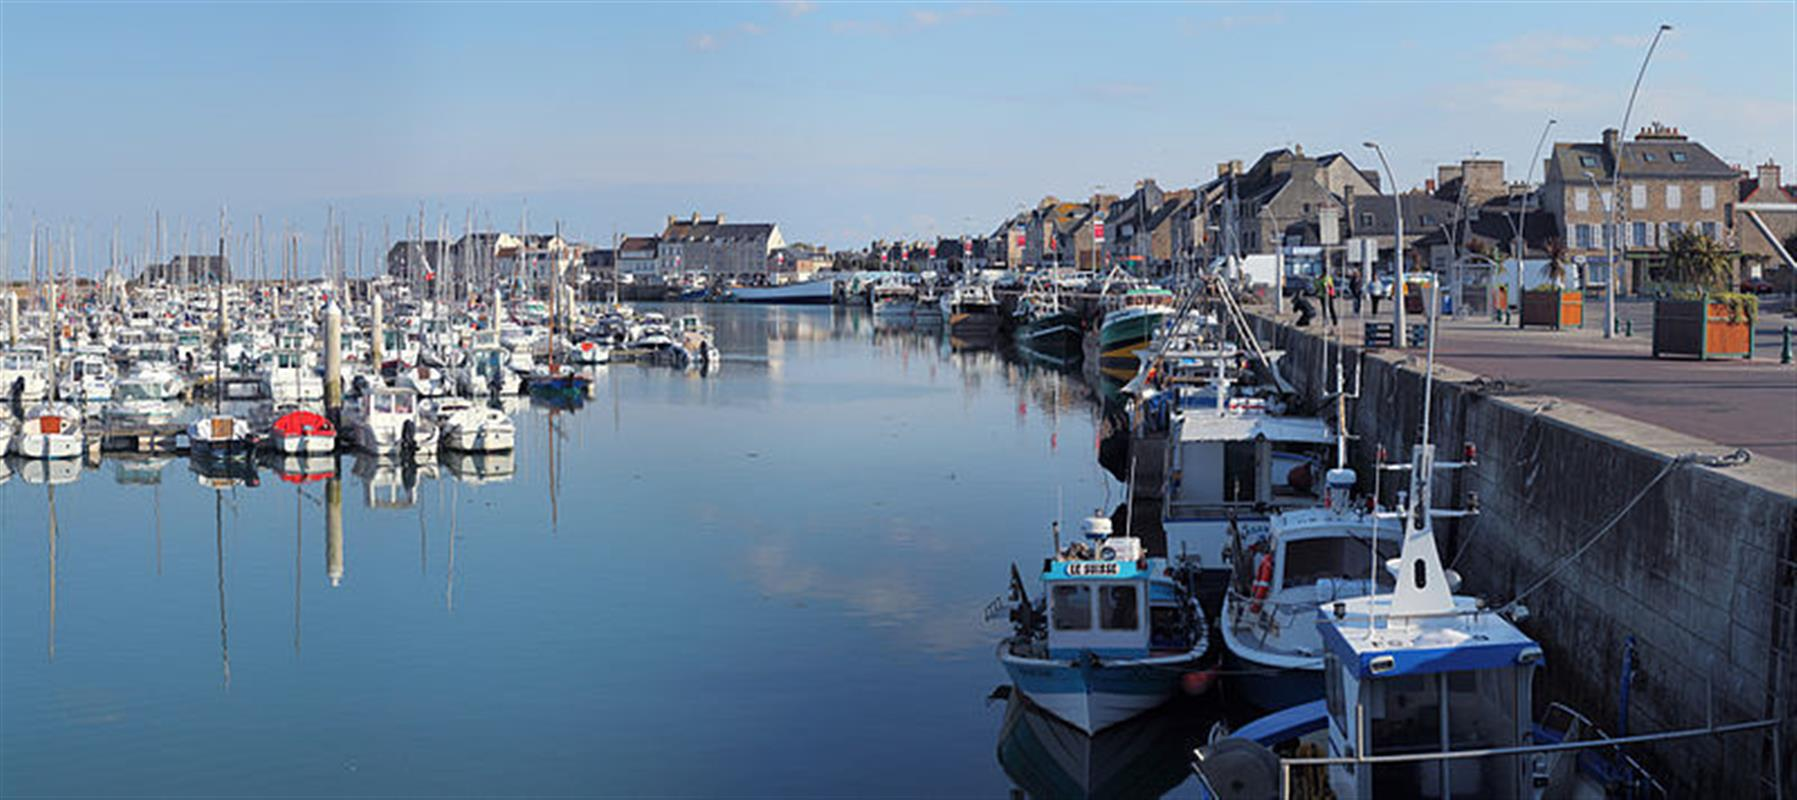 Saint vaast la hougue tourisme loisirs h tel de la - Office de tourisme de saint vaast la hougue ...